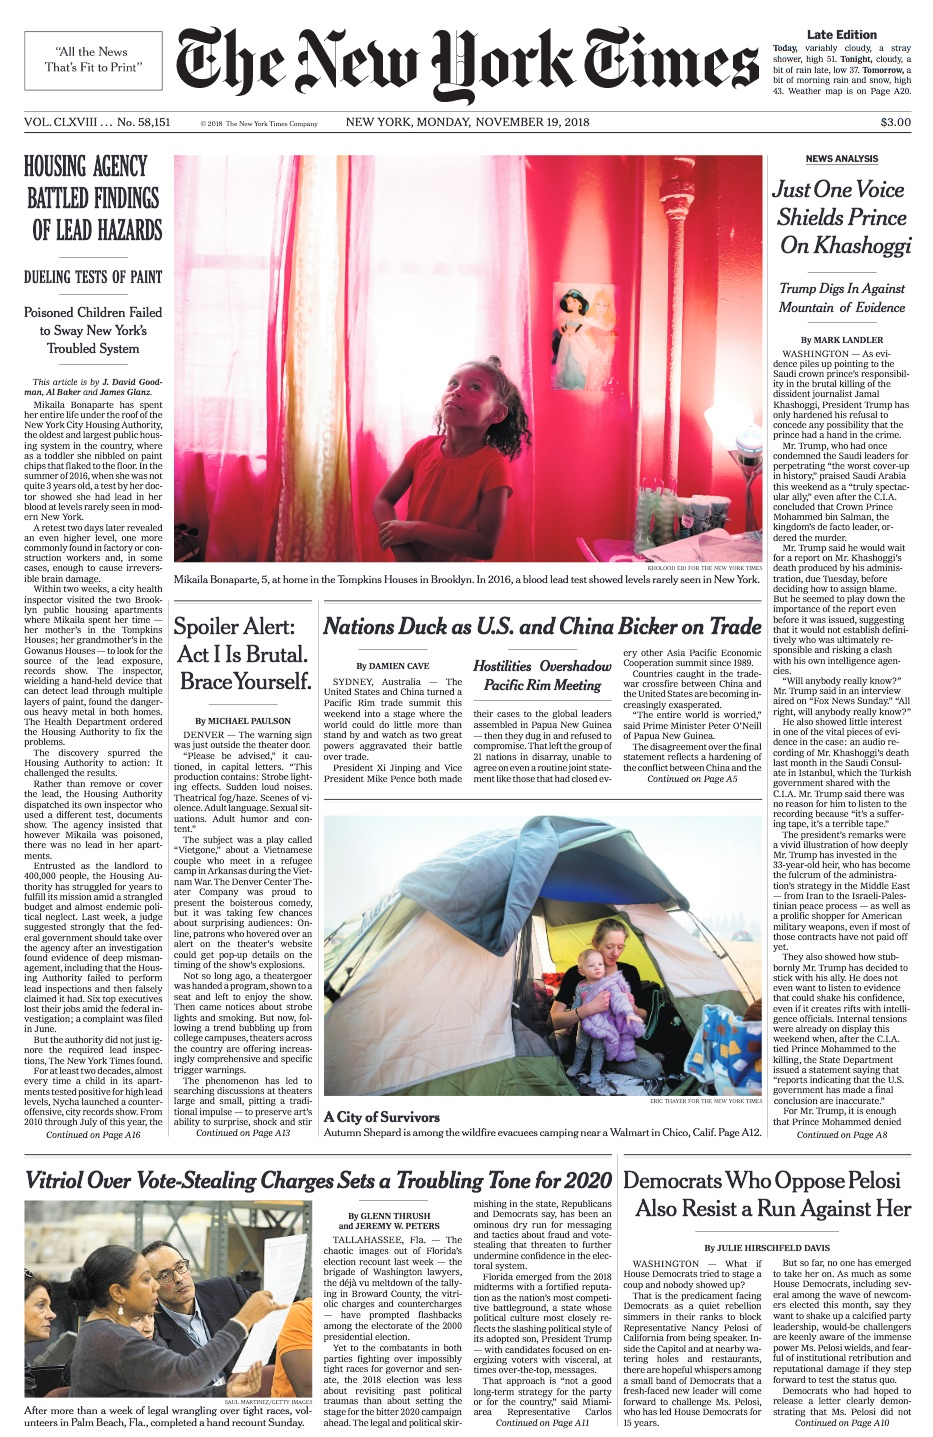 NYT_FrontPage_111918.jpg